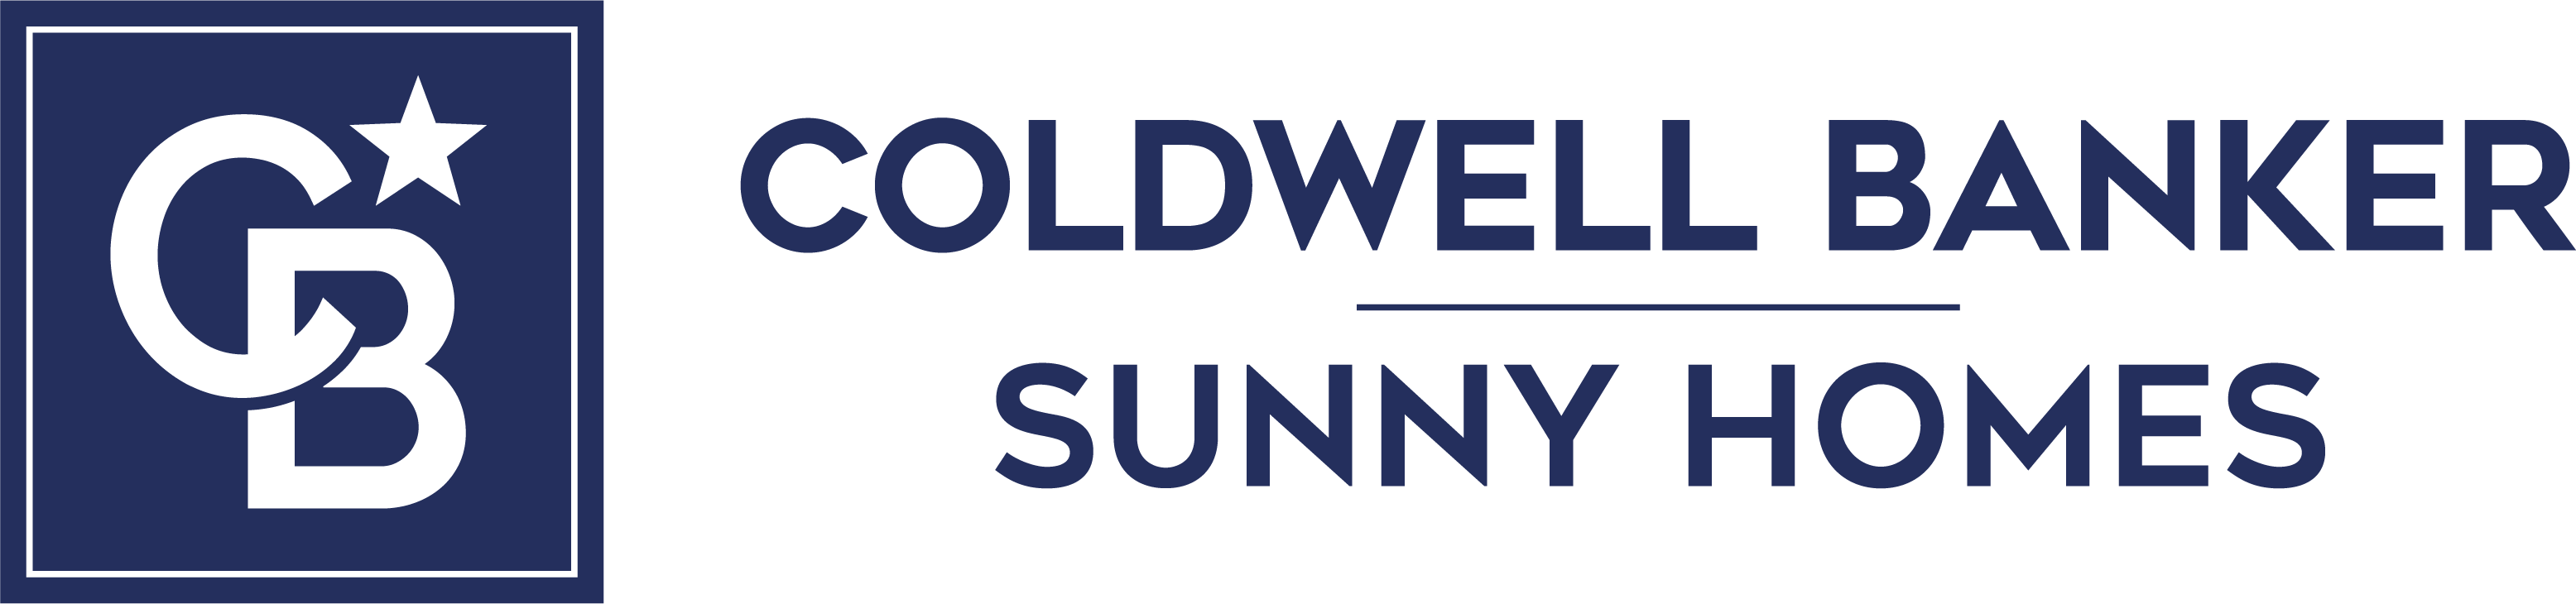 Coldwell Banker-Sunny Homes